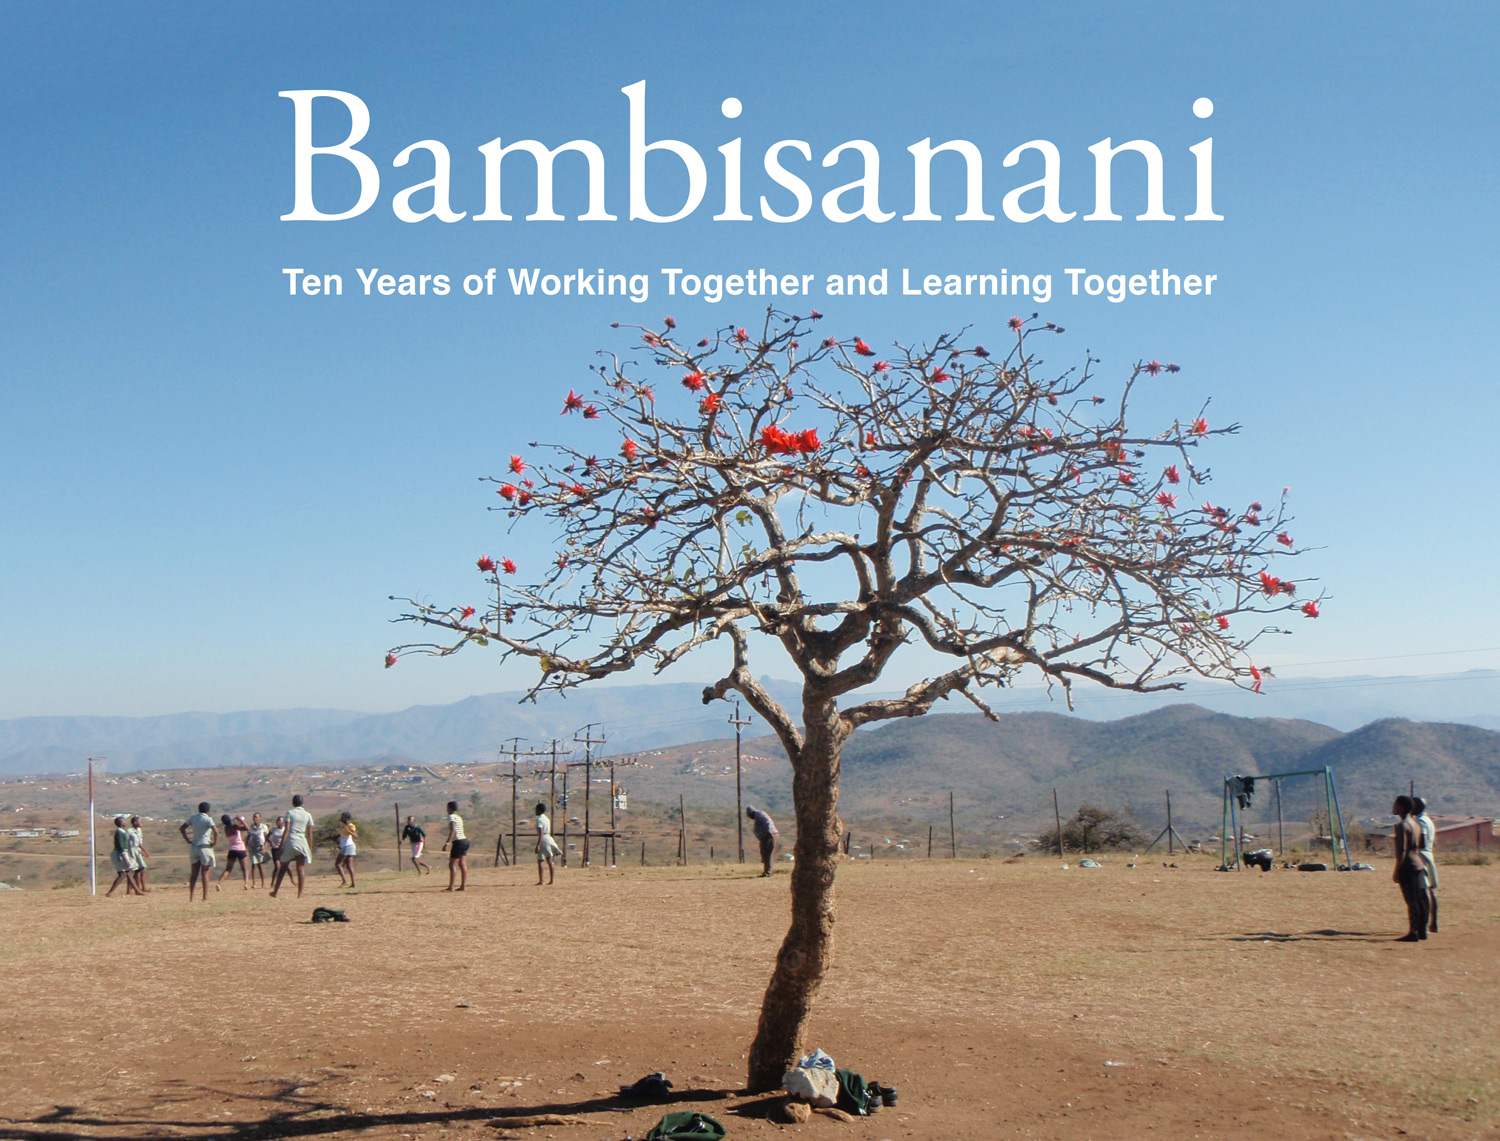 Bambisanani-Ten-years-of-working-together-and-learning-together-Dust-Jacket-26102017.jpg